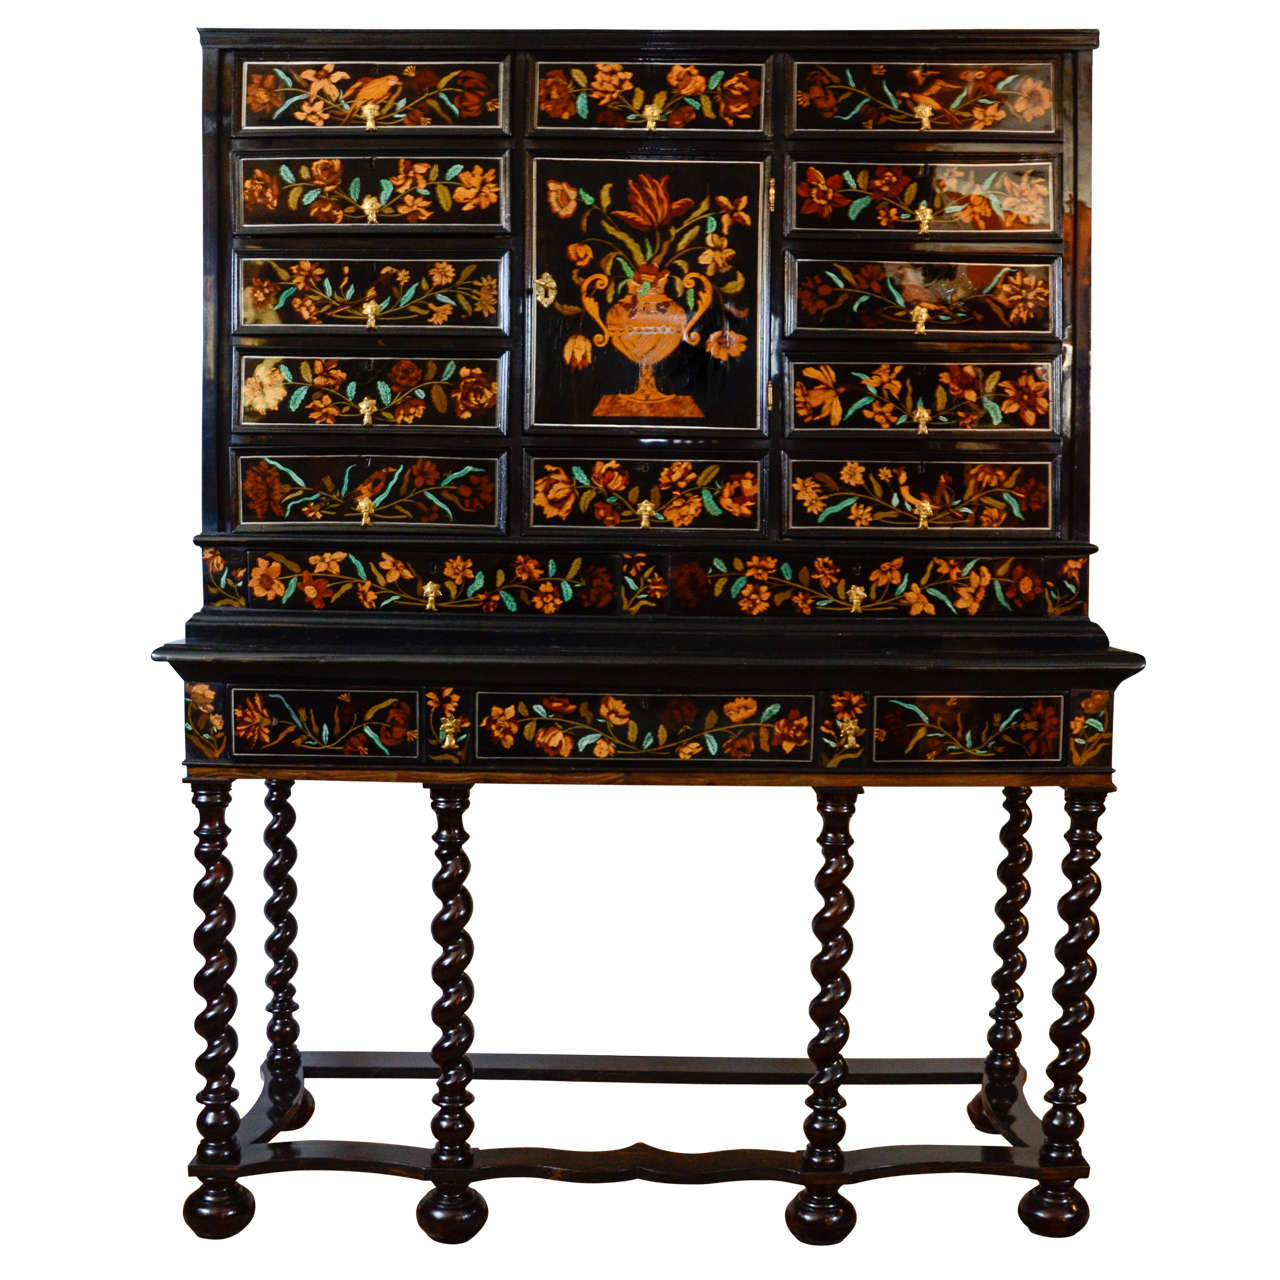 Louis Xiv Marquetry Cabinet On Stand 17th Century At 1stdibs